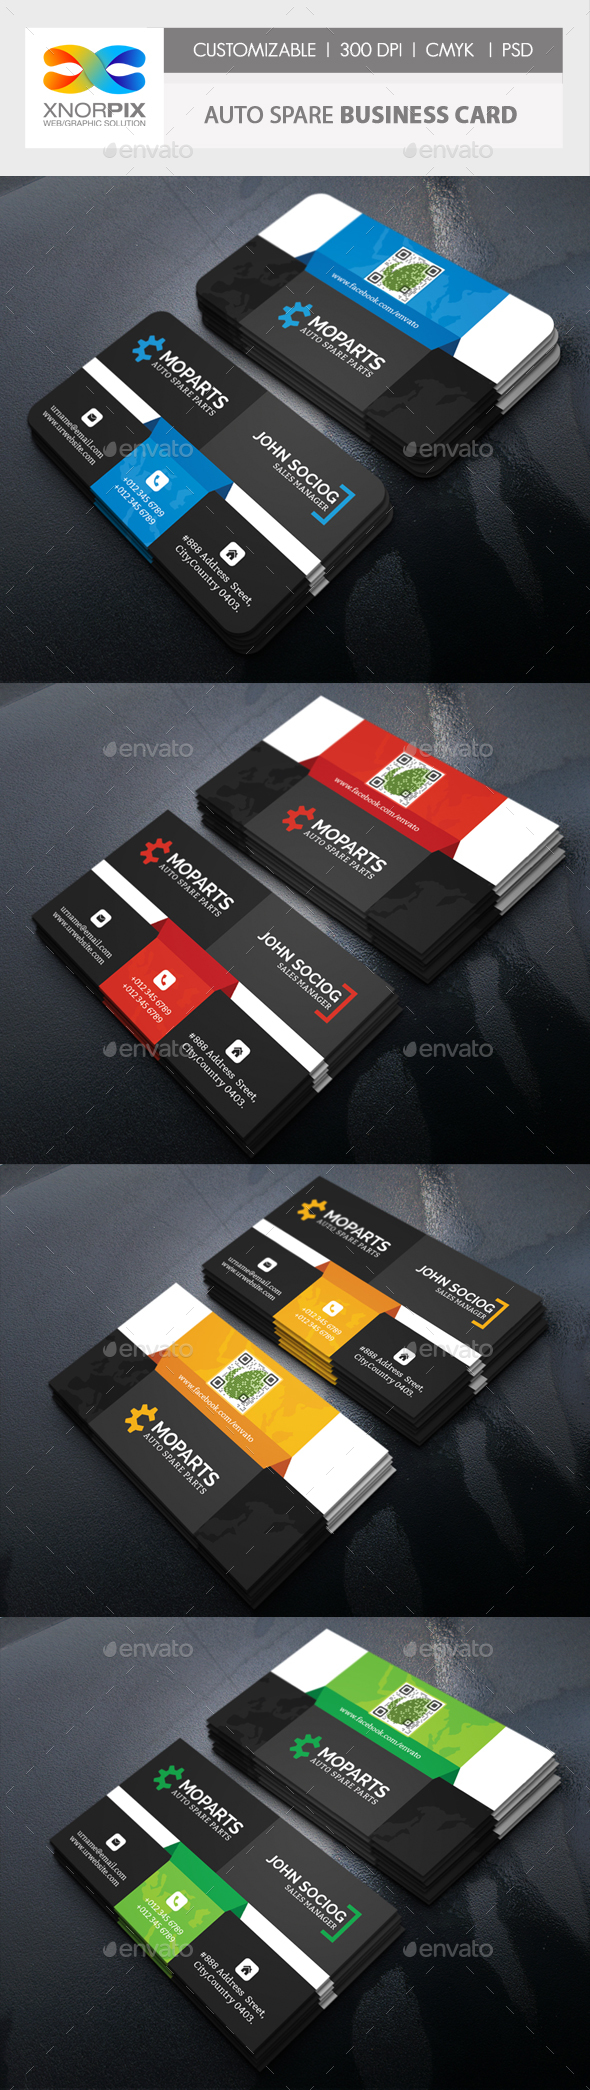 Auto Spare Business Card - Corporate Business Cards